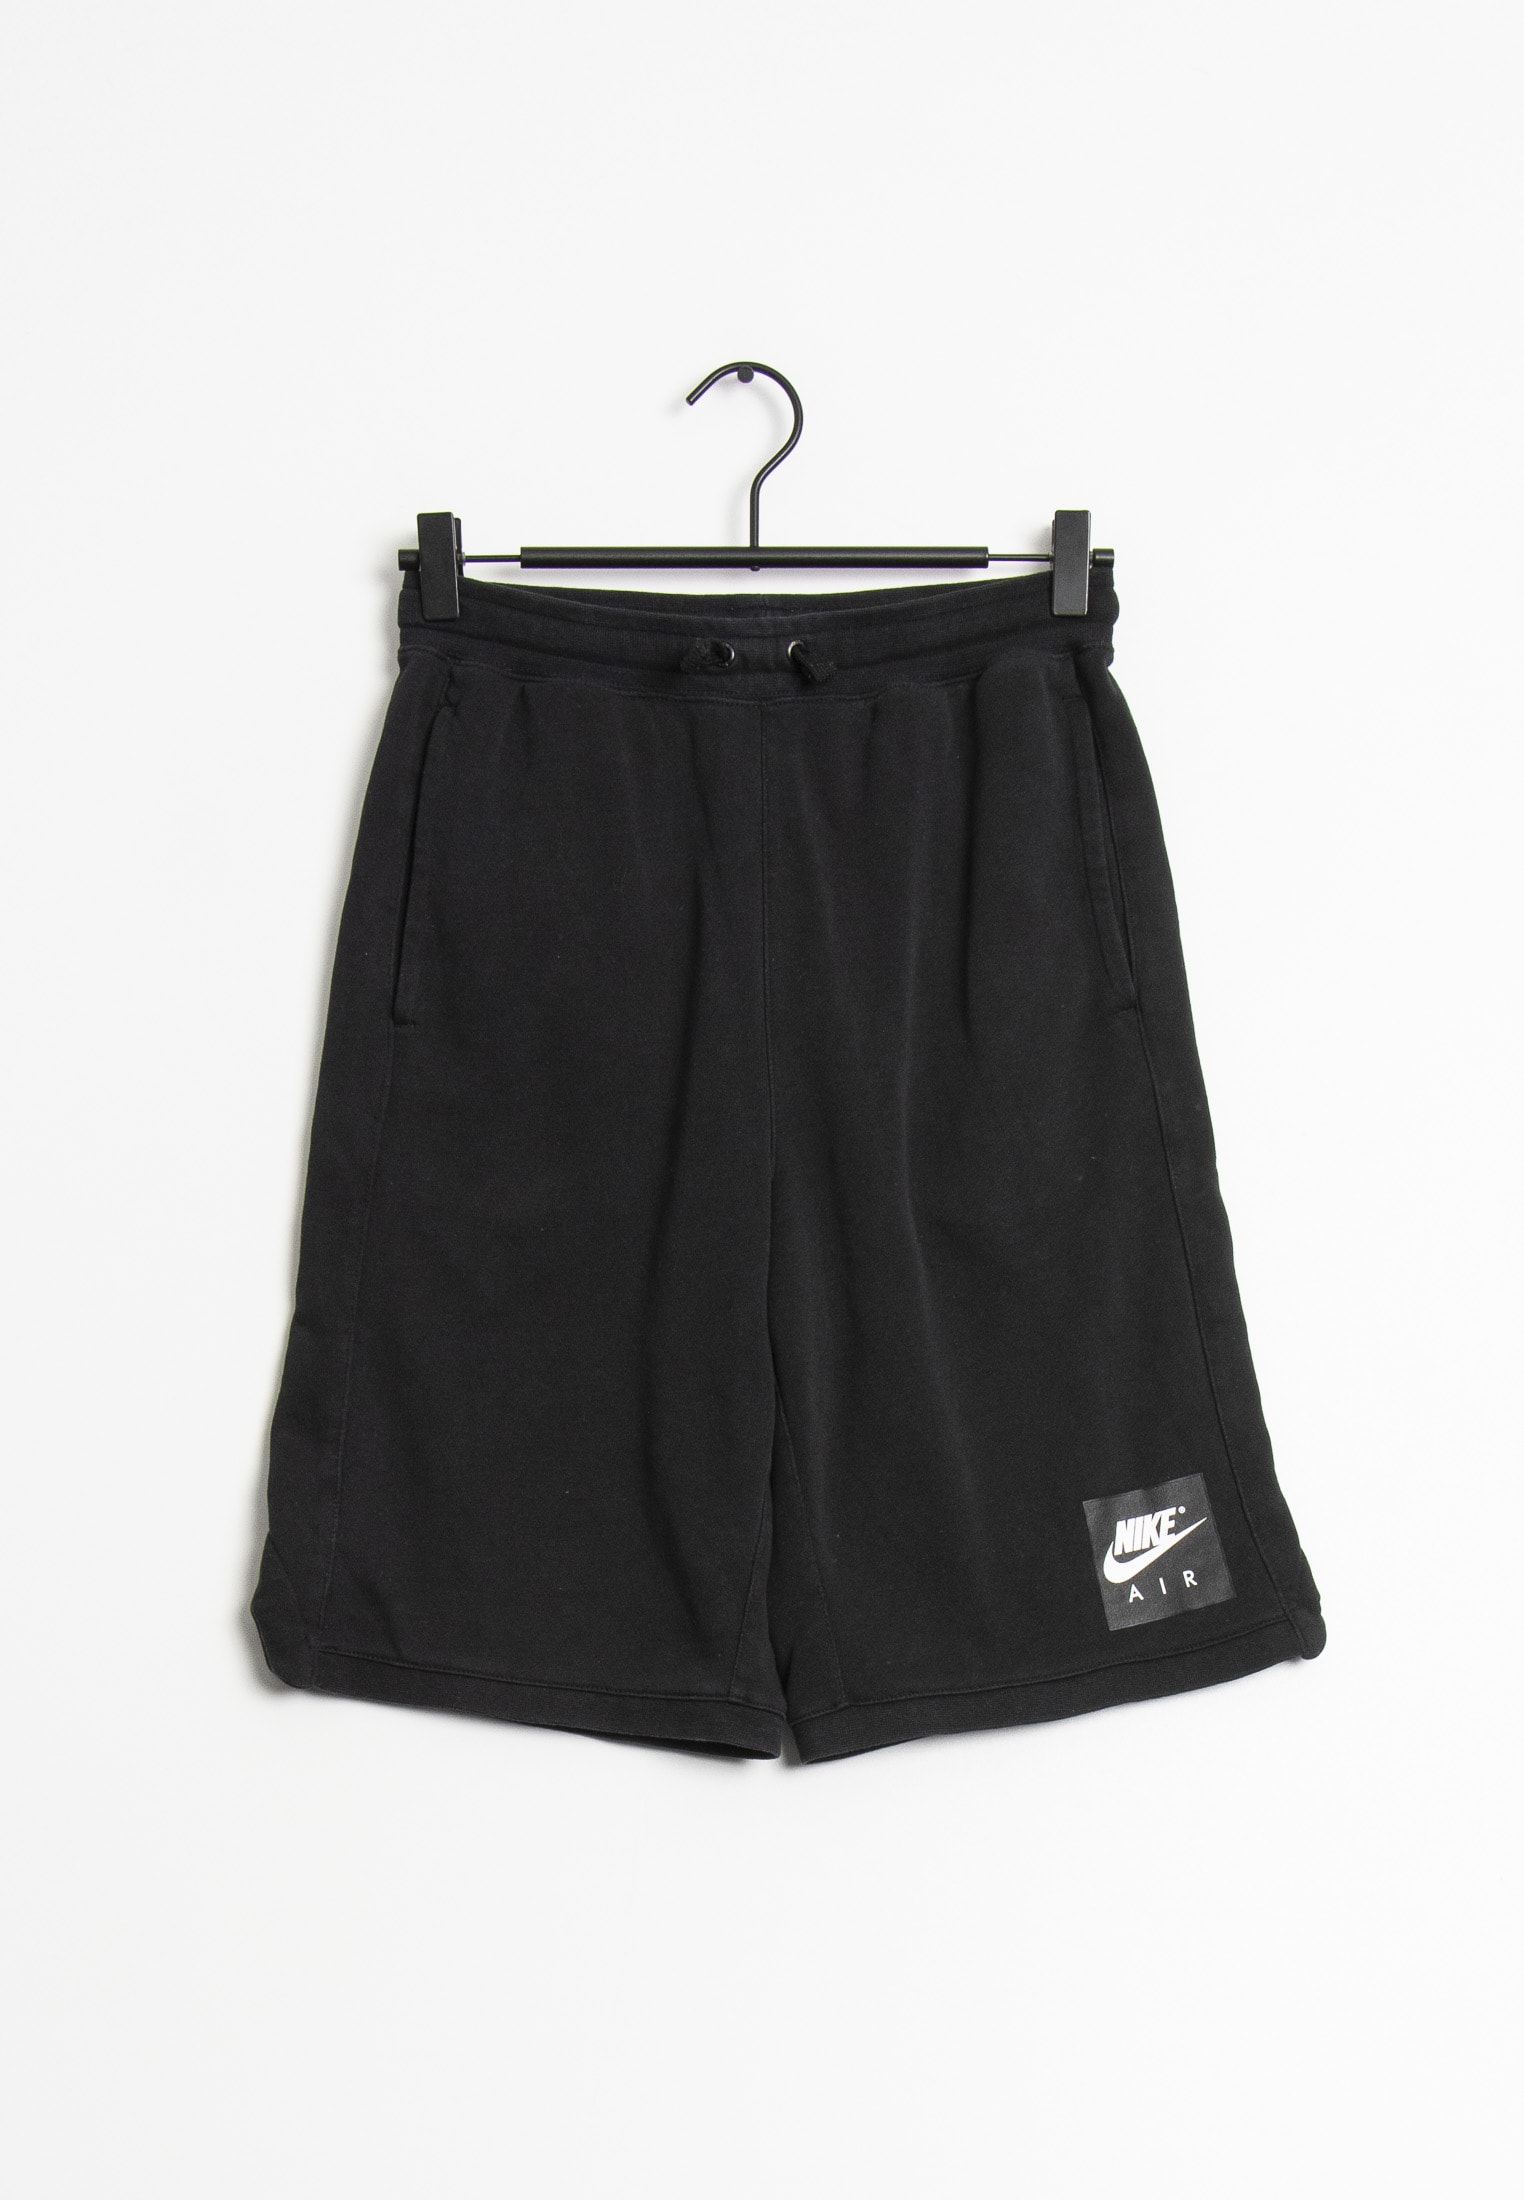 Nike shorts, sort, XL